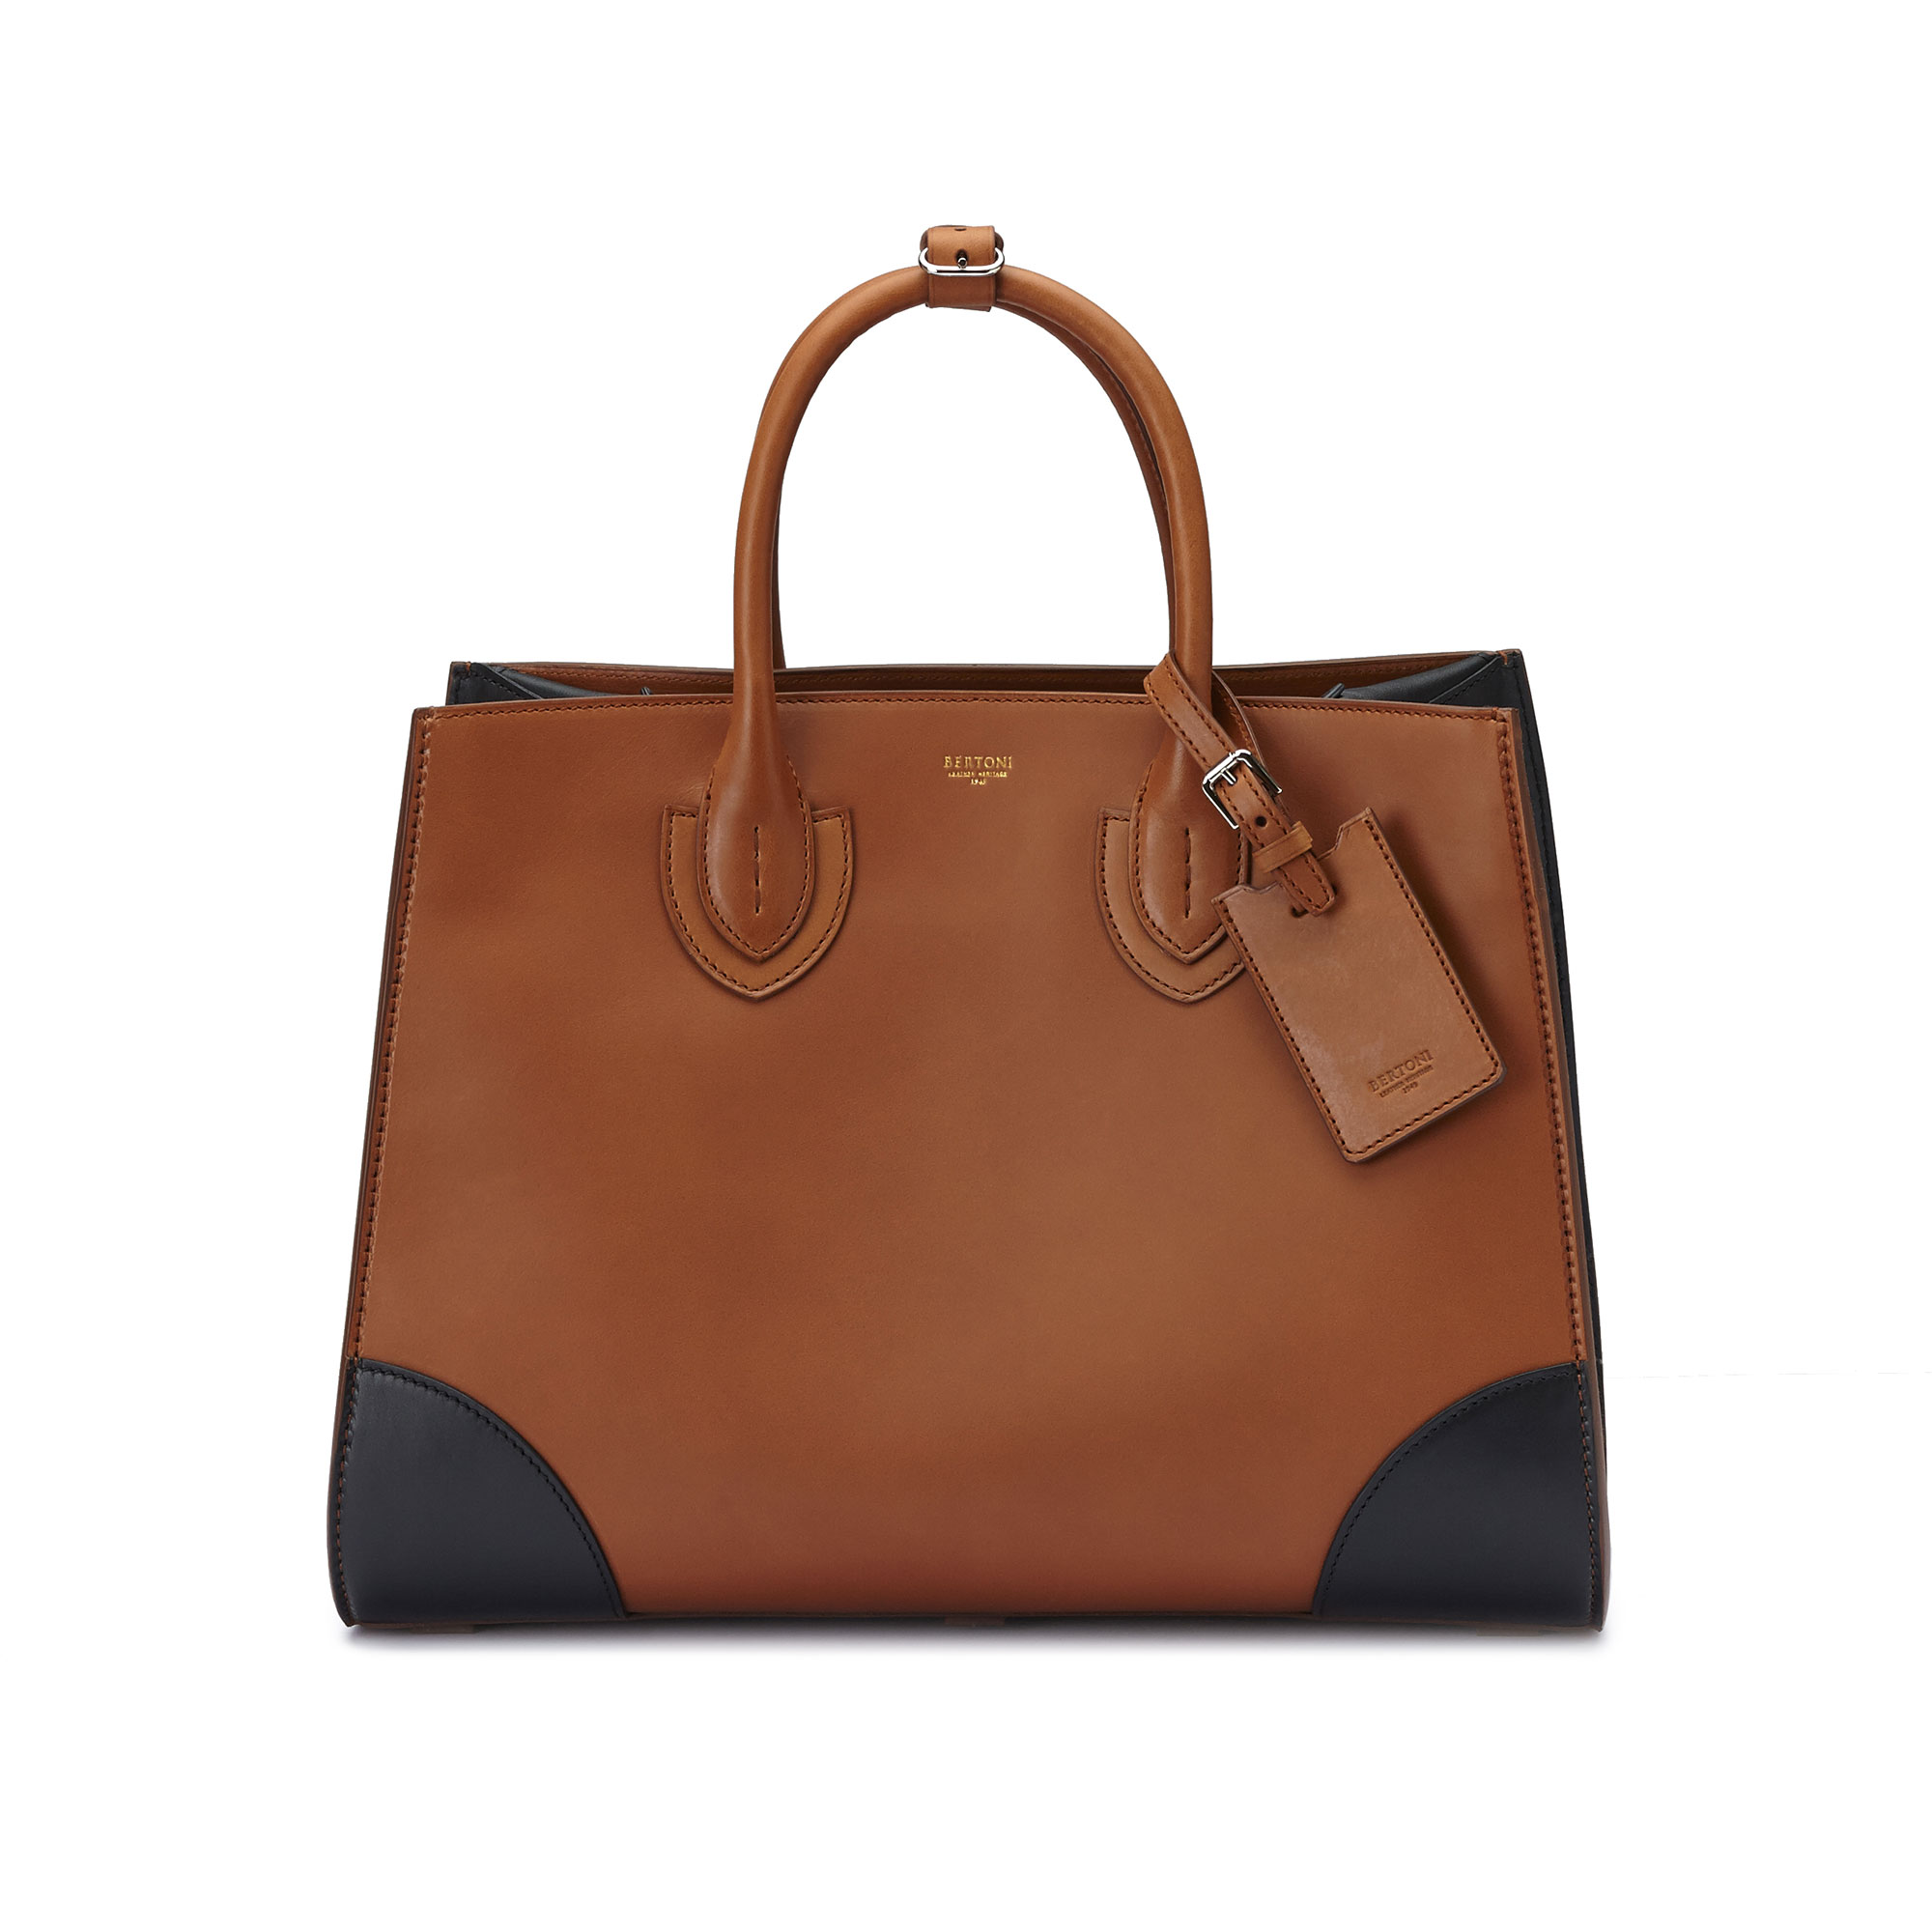 The terrabruciata and black french calf Darcy large bag by Bertoni 1949 02